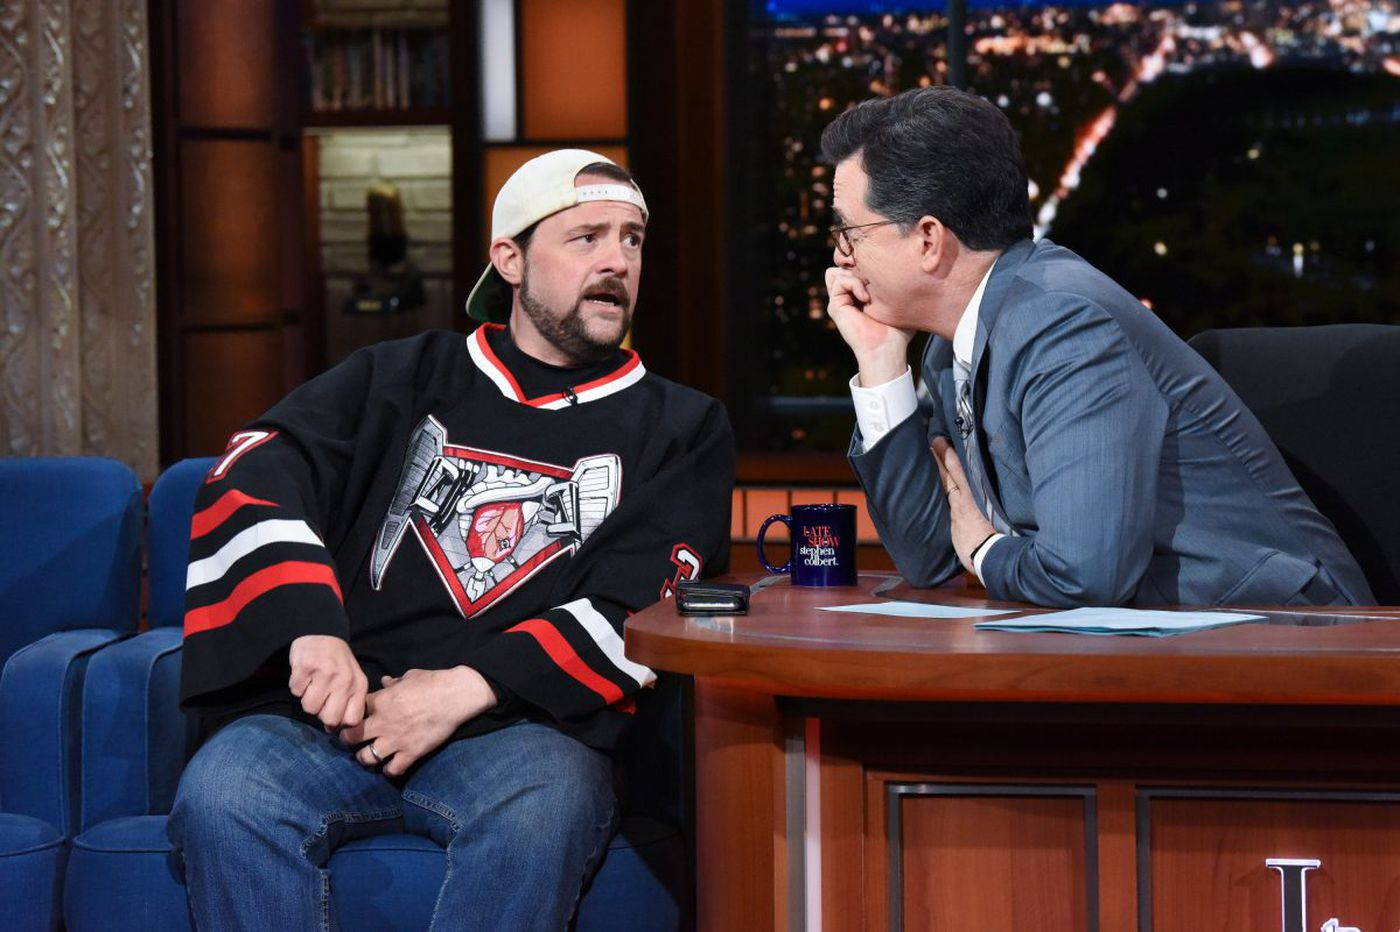 No, Kevin Smith's marijuana use was not good for his heart, Temple cardiologist says